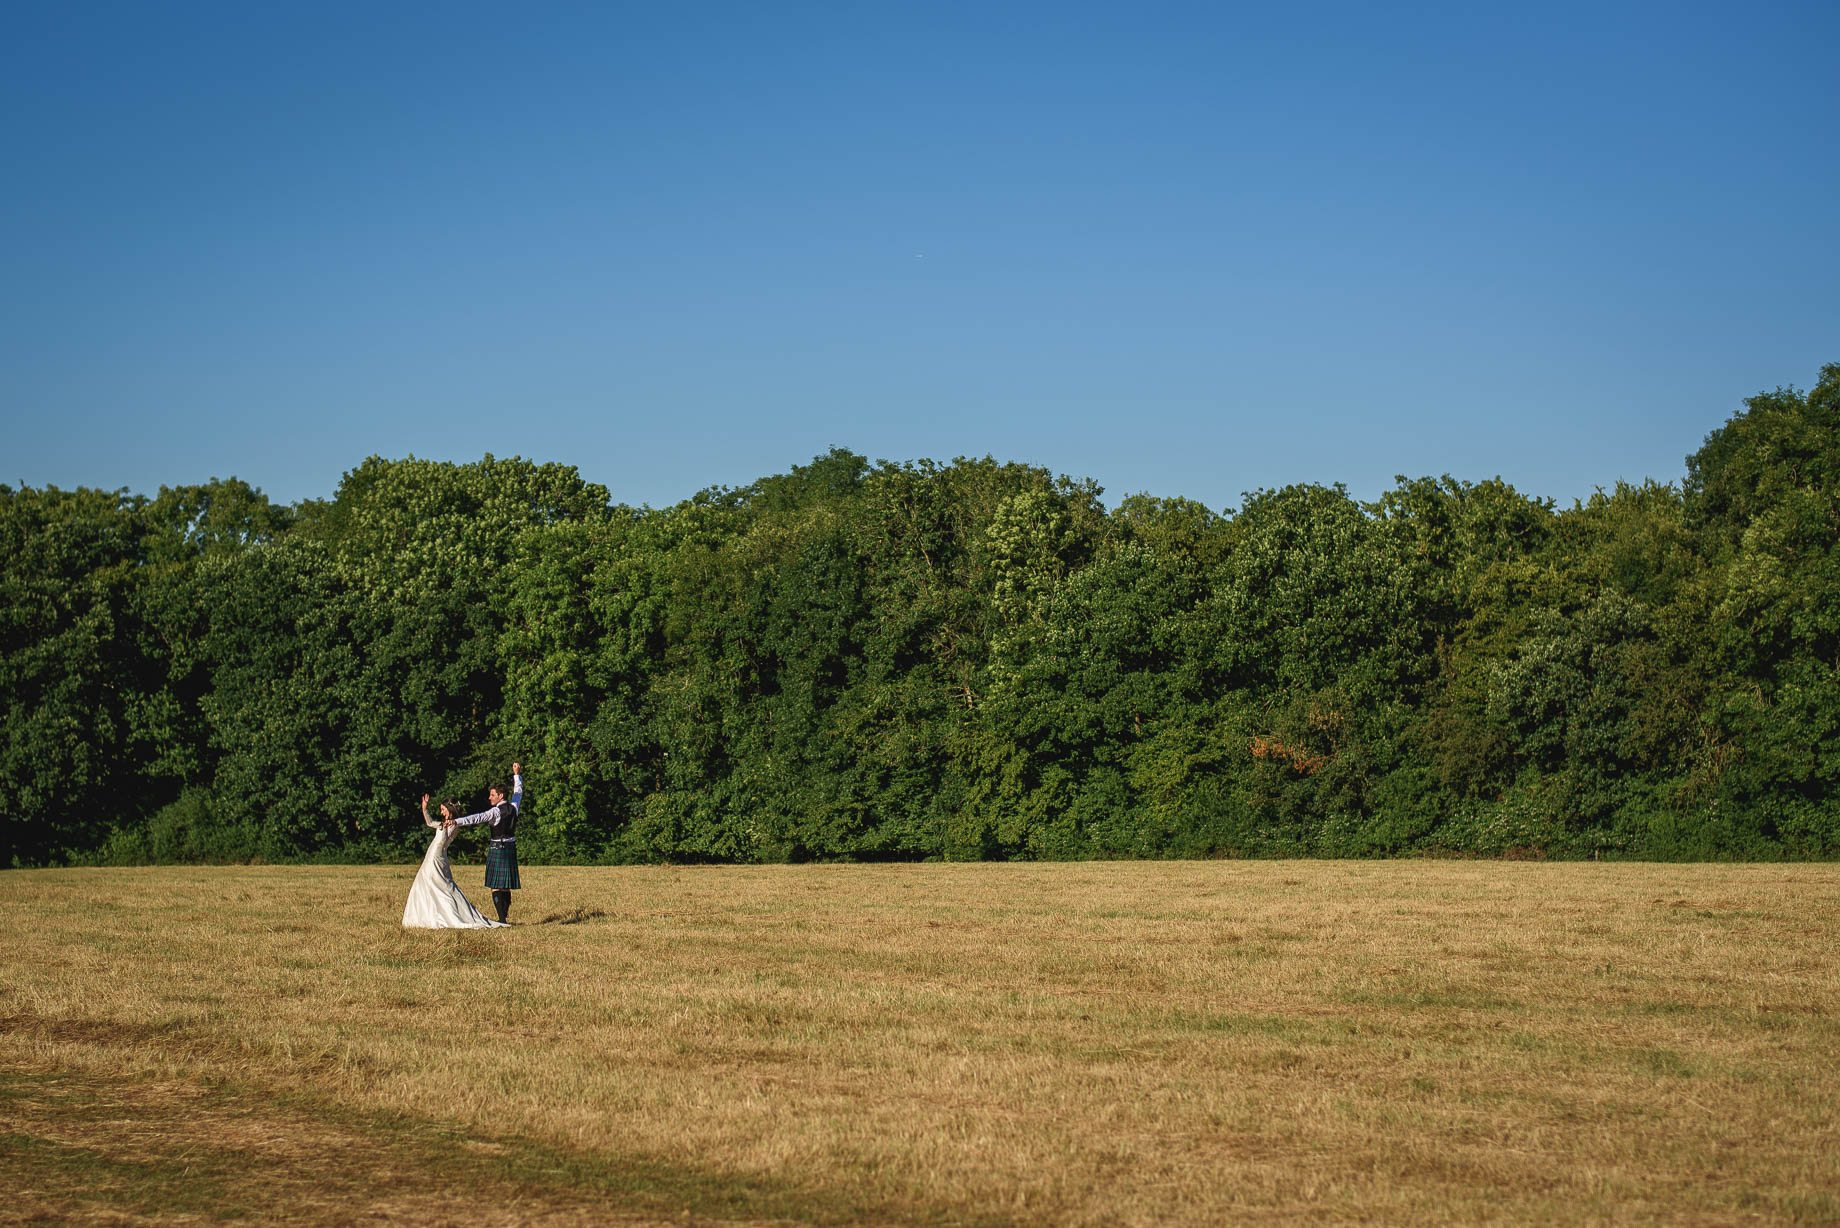 Gildings Barn wedding photography - Sarah and Steve (149 of 190)